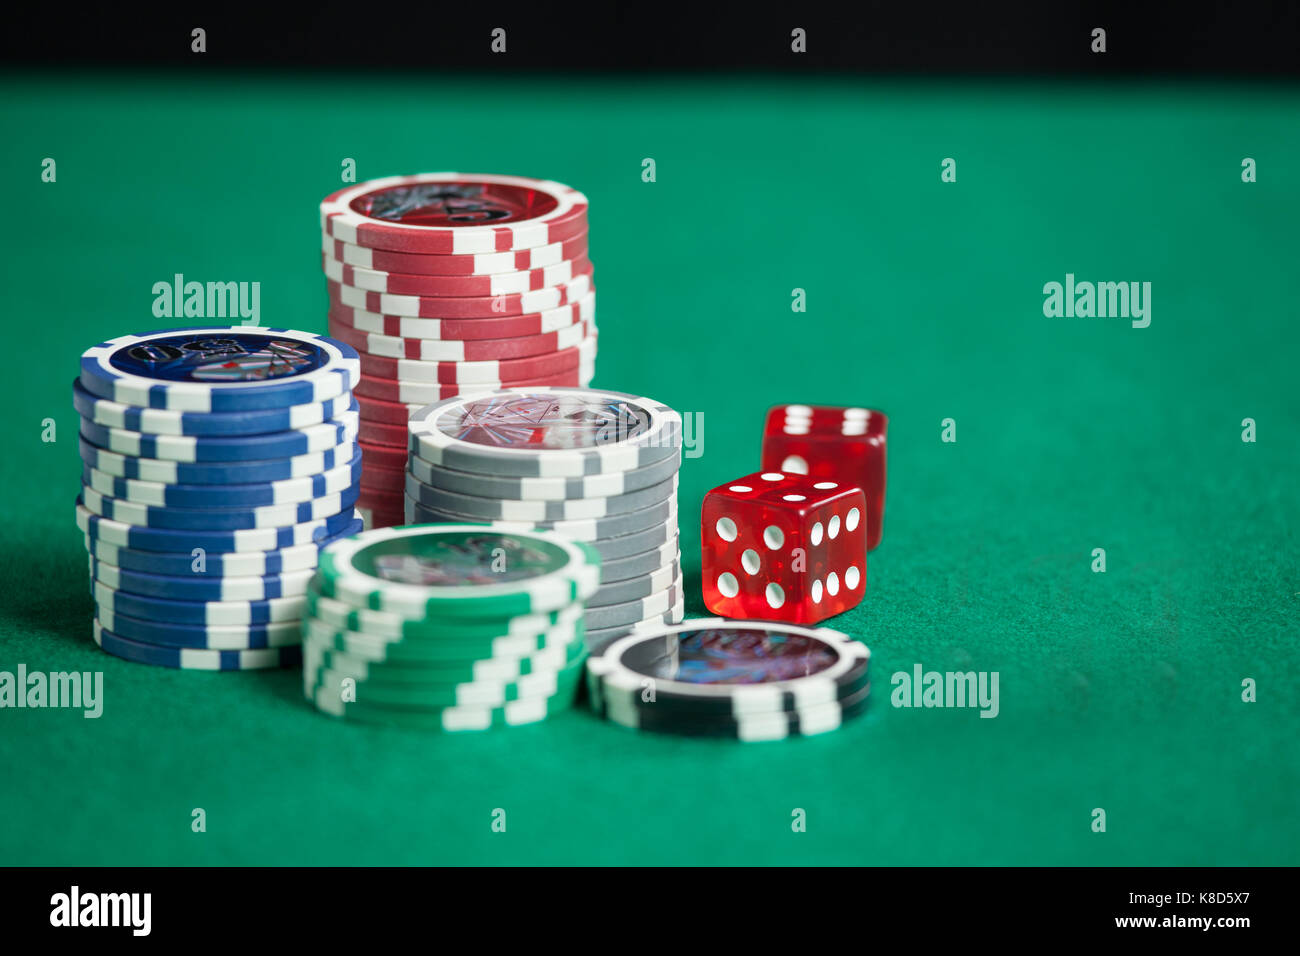 Blackjack at  casino ,Casino Chips And Red Dice - Stock Image